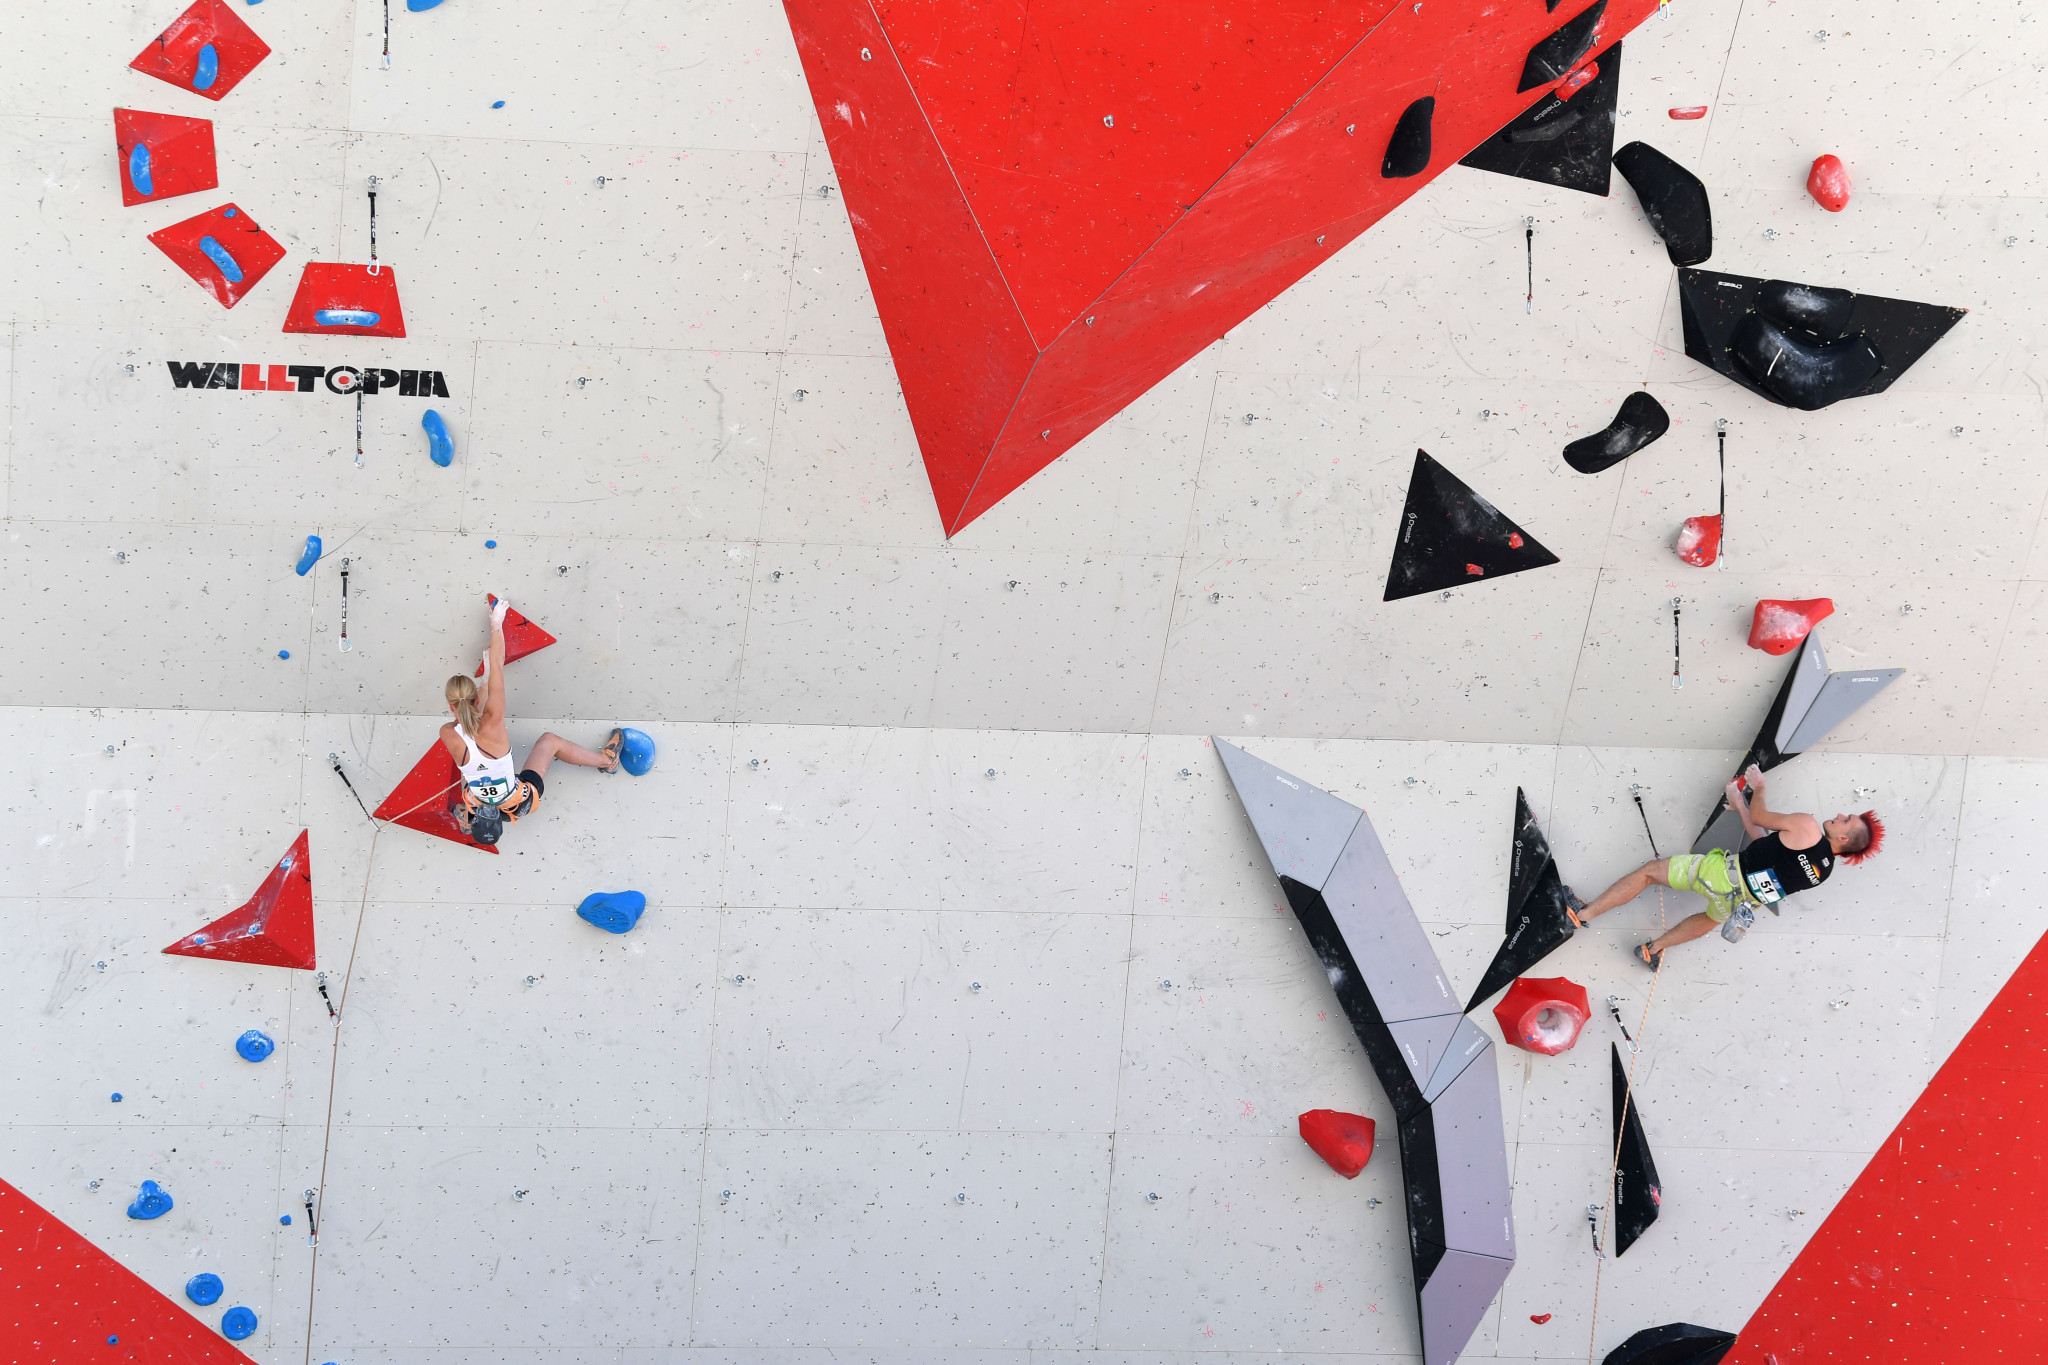 The format of the sport climbing event at Jakarta Palembang 2018 has been criticised ©Getty Images